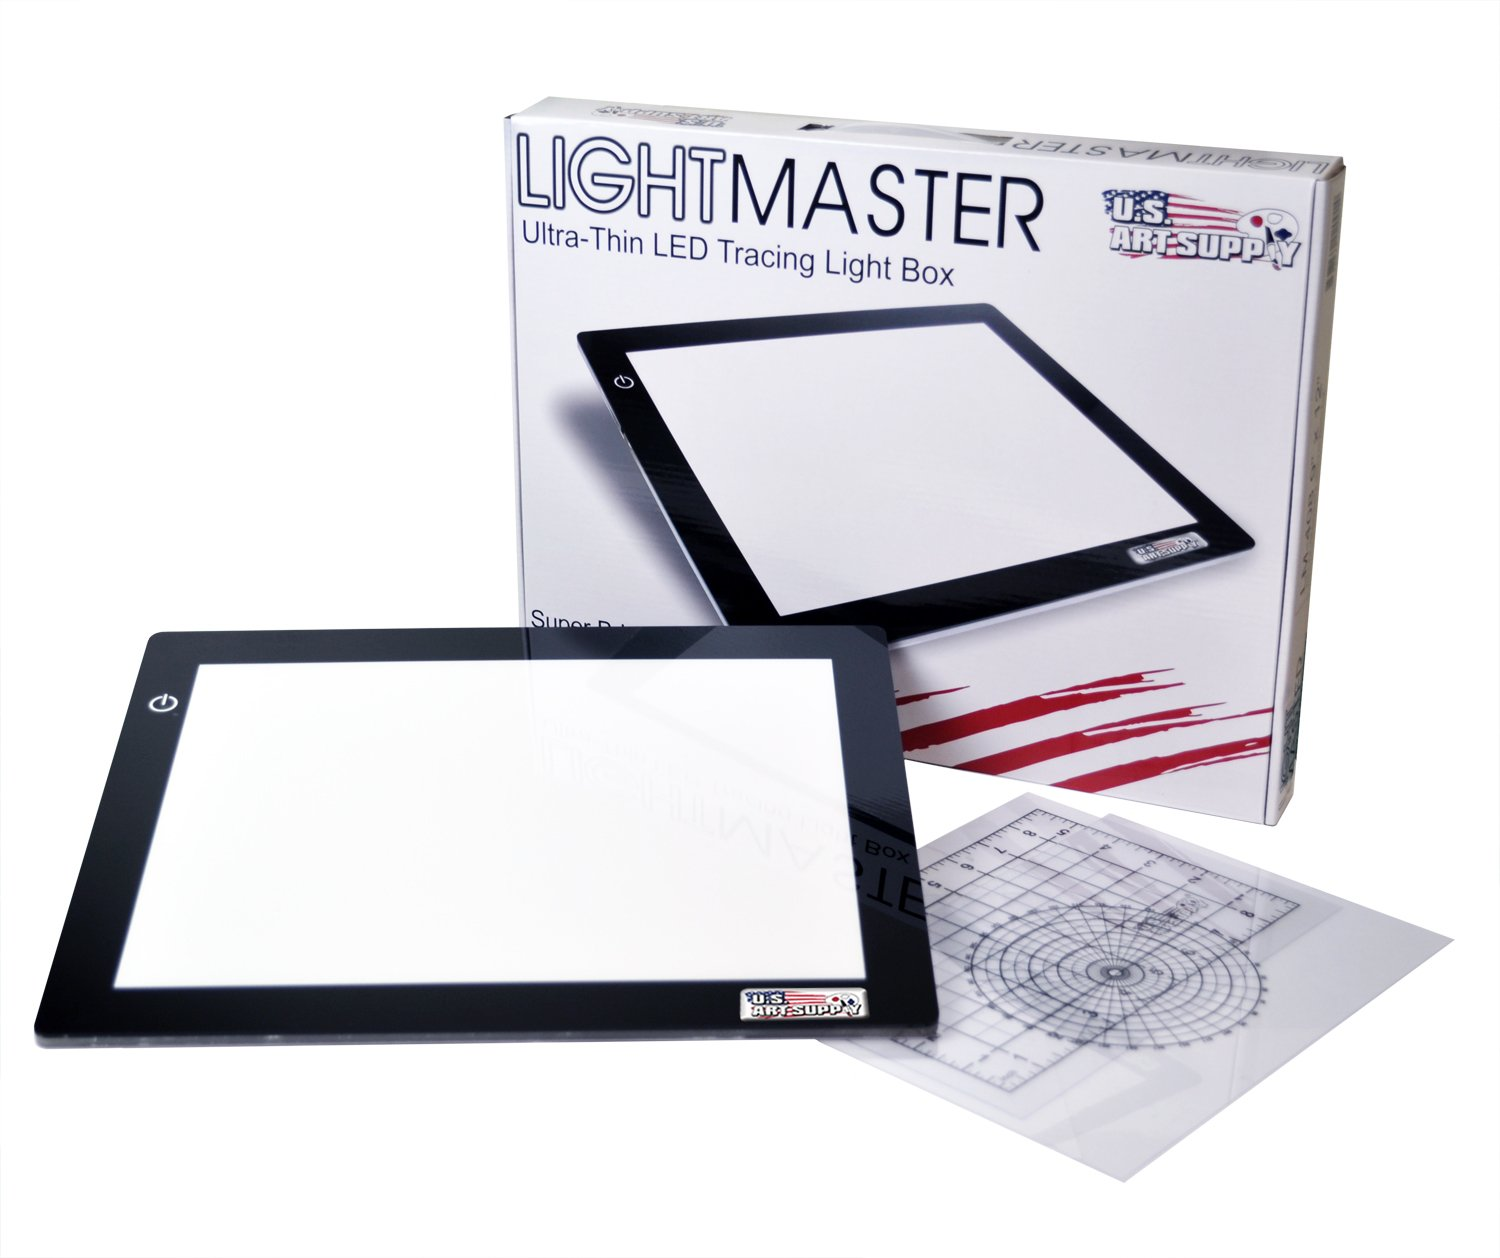 US ART SUPPLY Lightmaster USB Powered 18.75'' Diagonal Professional Artist Size (A4) 9''x12'' LED Lightbox Board - 5-Volt Light Bright Ultra-Thin 3/8'' Profile L.E.D. Light Box Pad with 110V AC Power Adapter, USB Adapter to Power From any USB Port, Computer o